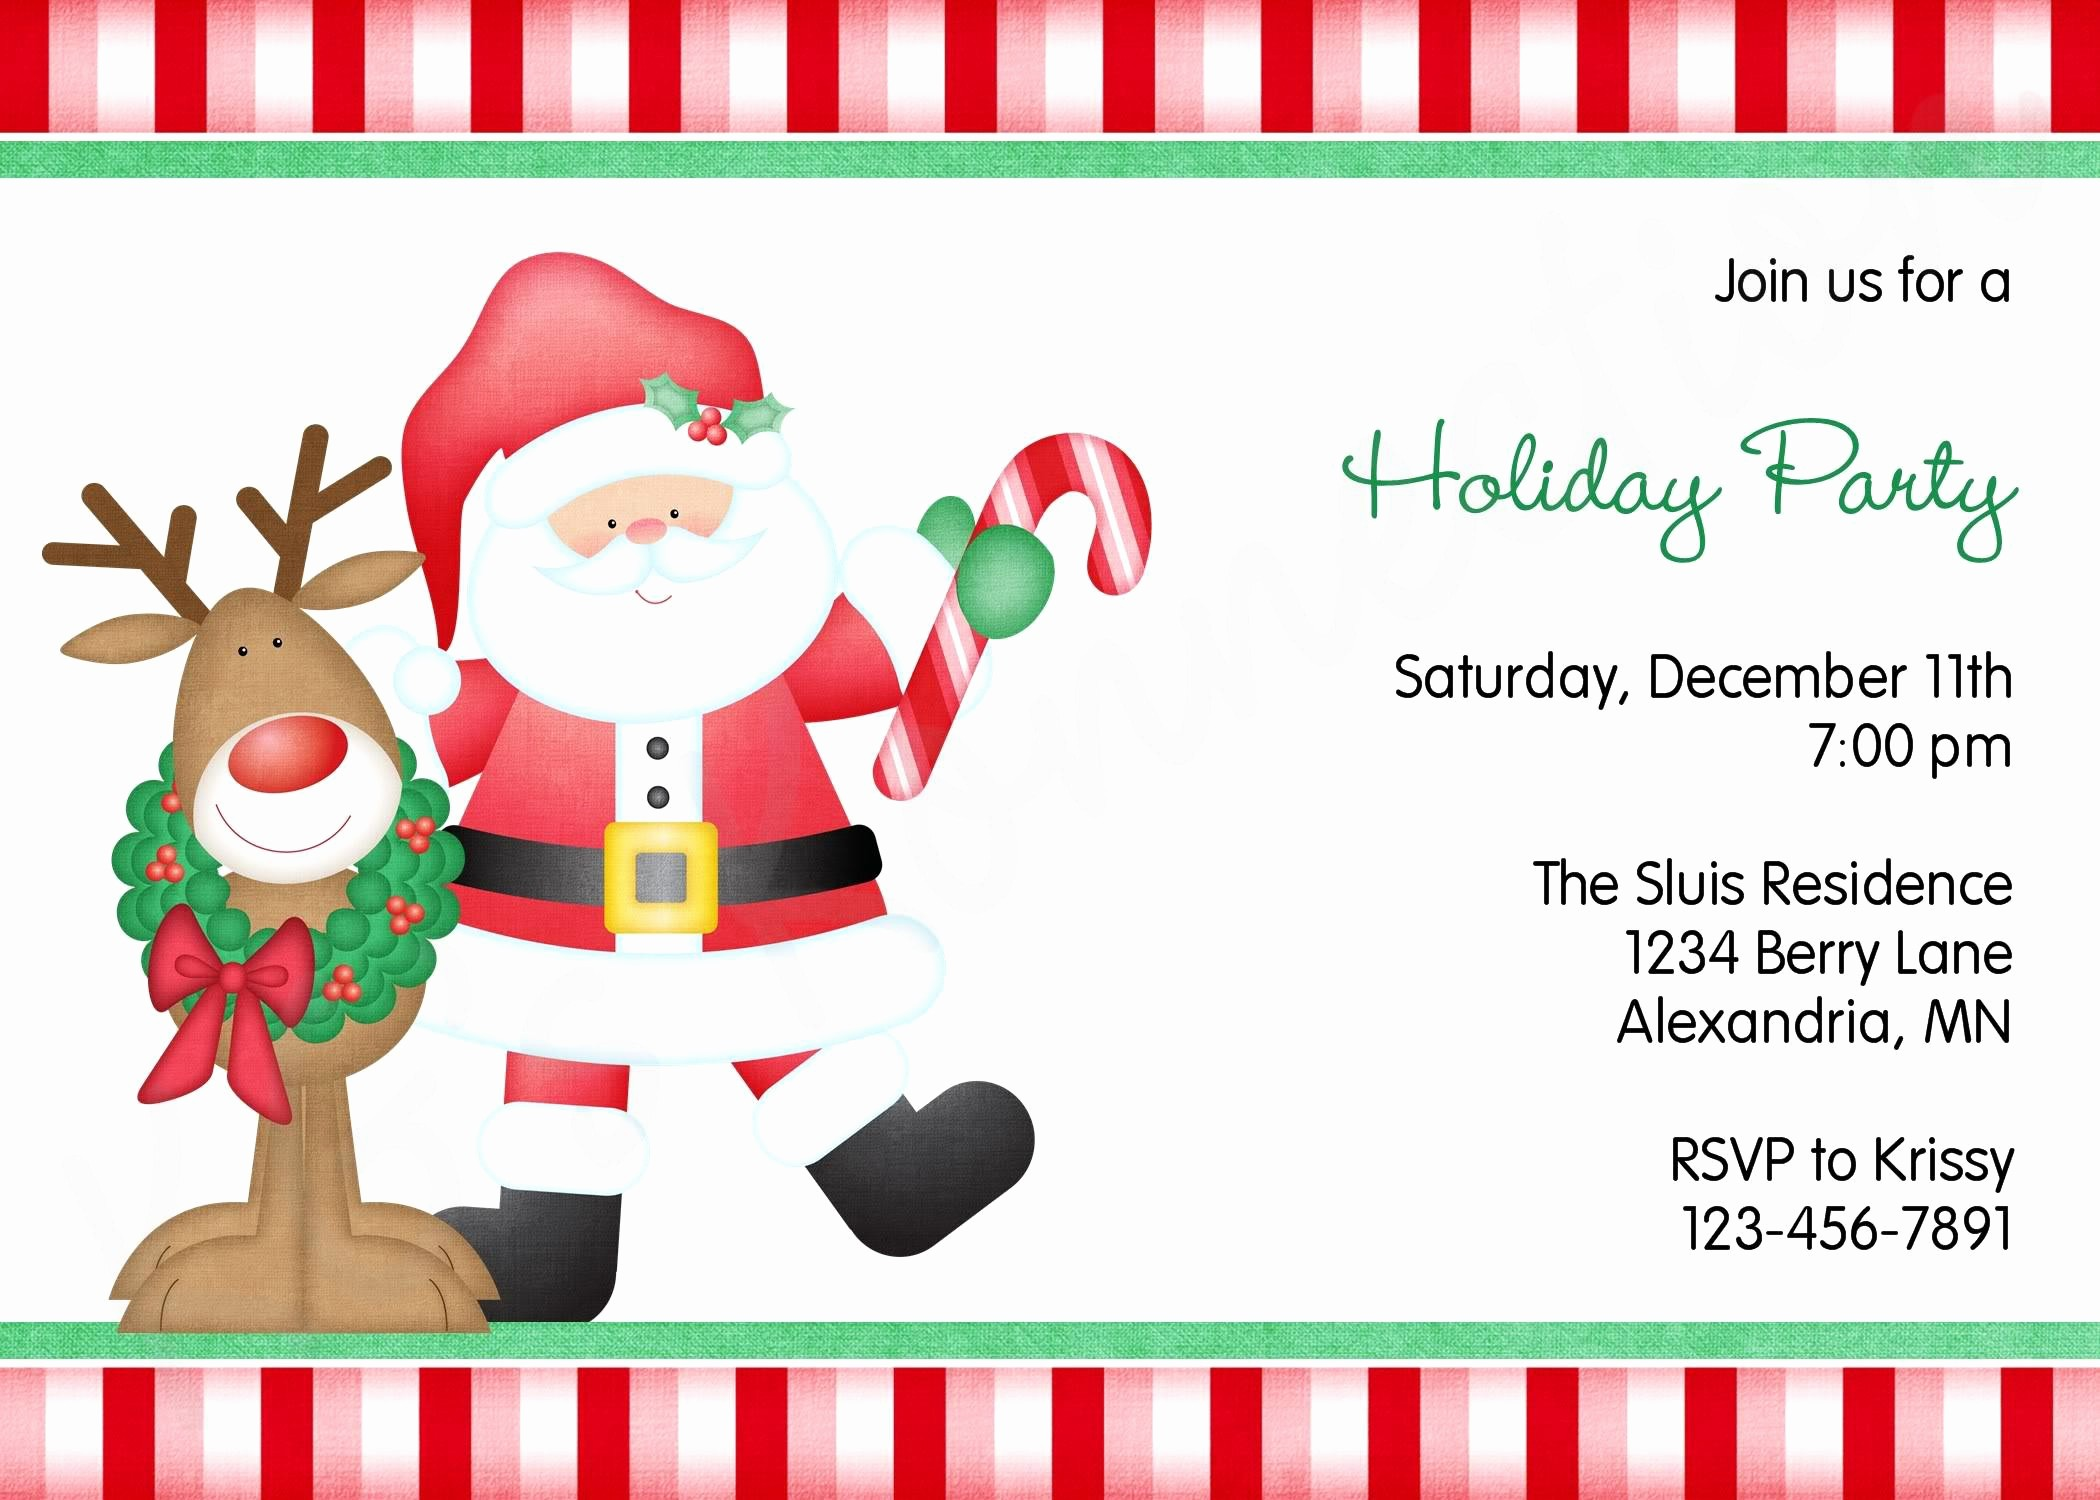 Christmas Party Invitations Free Template Beautiful Free Christmas Party Invitations